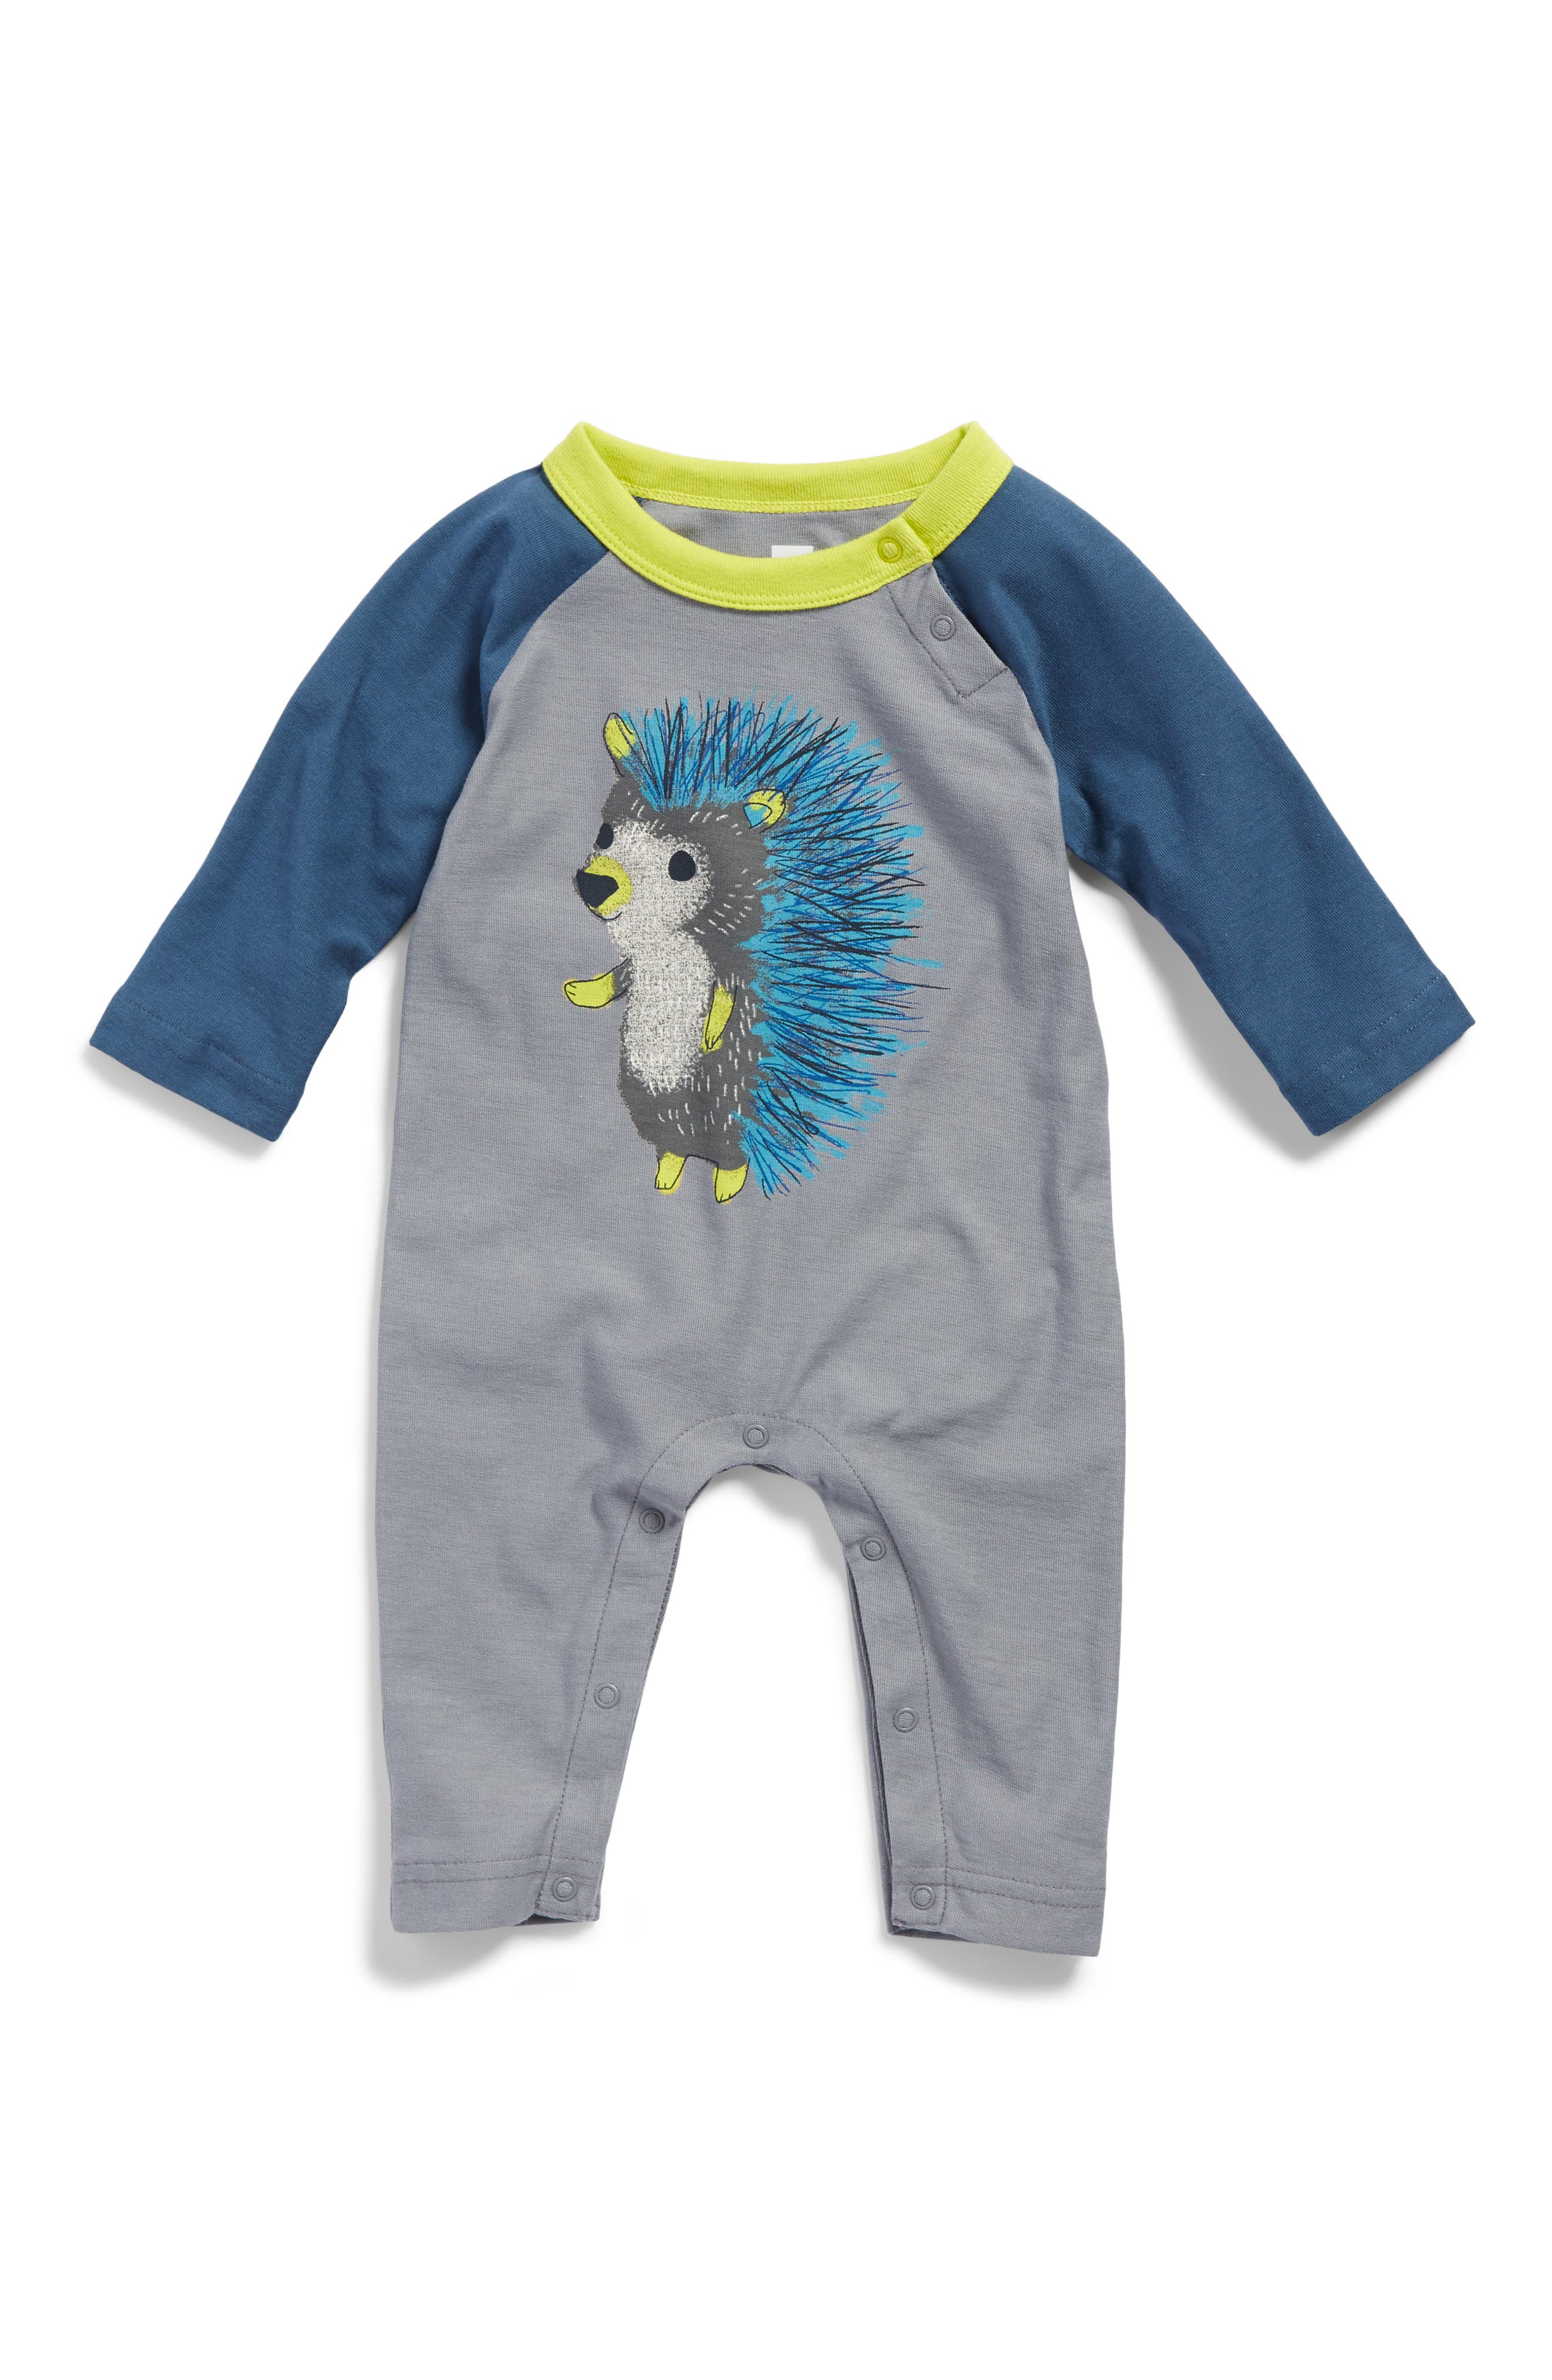 Main Image - Tea Collection Hedgehog Graphic Romper (Baby Boys)